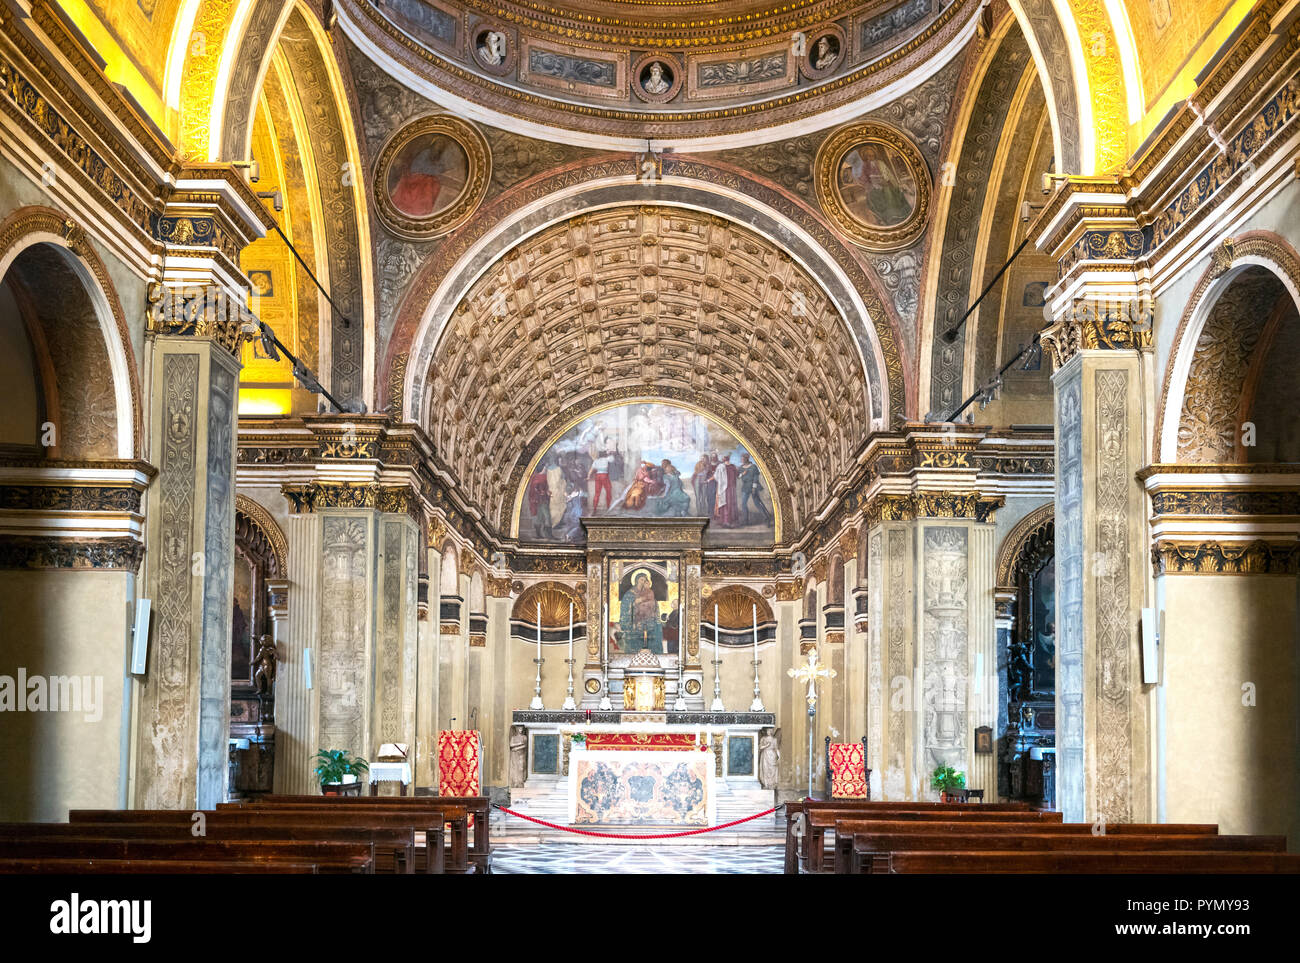 Milan, Italy, The S.Maria in S. Satiro church, the central nave with the famous fake perspective chorus by Bramante in the background - Stock Image